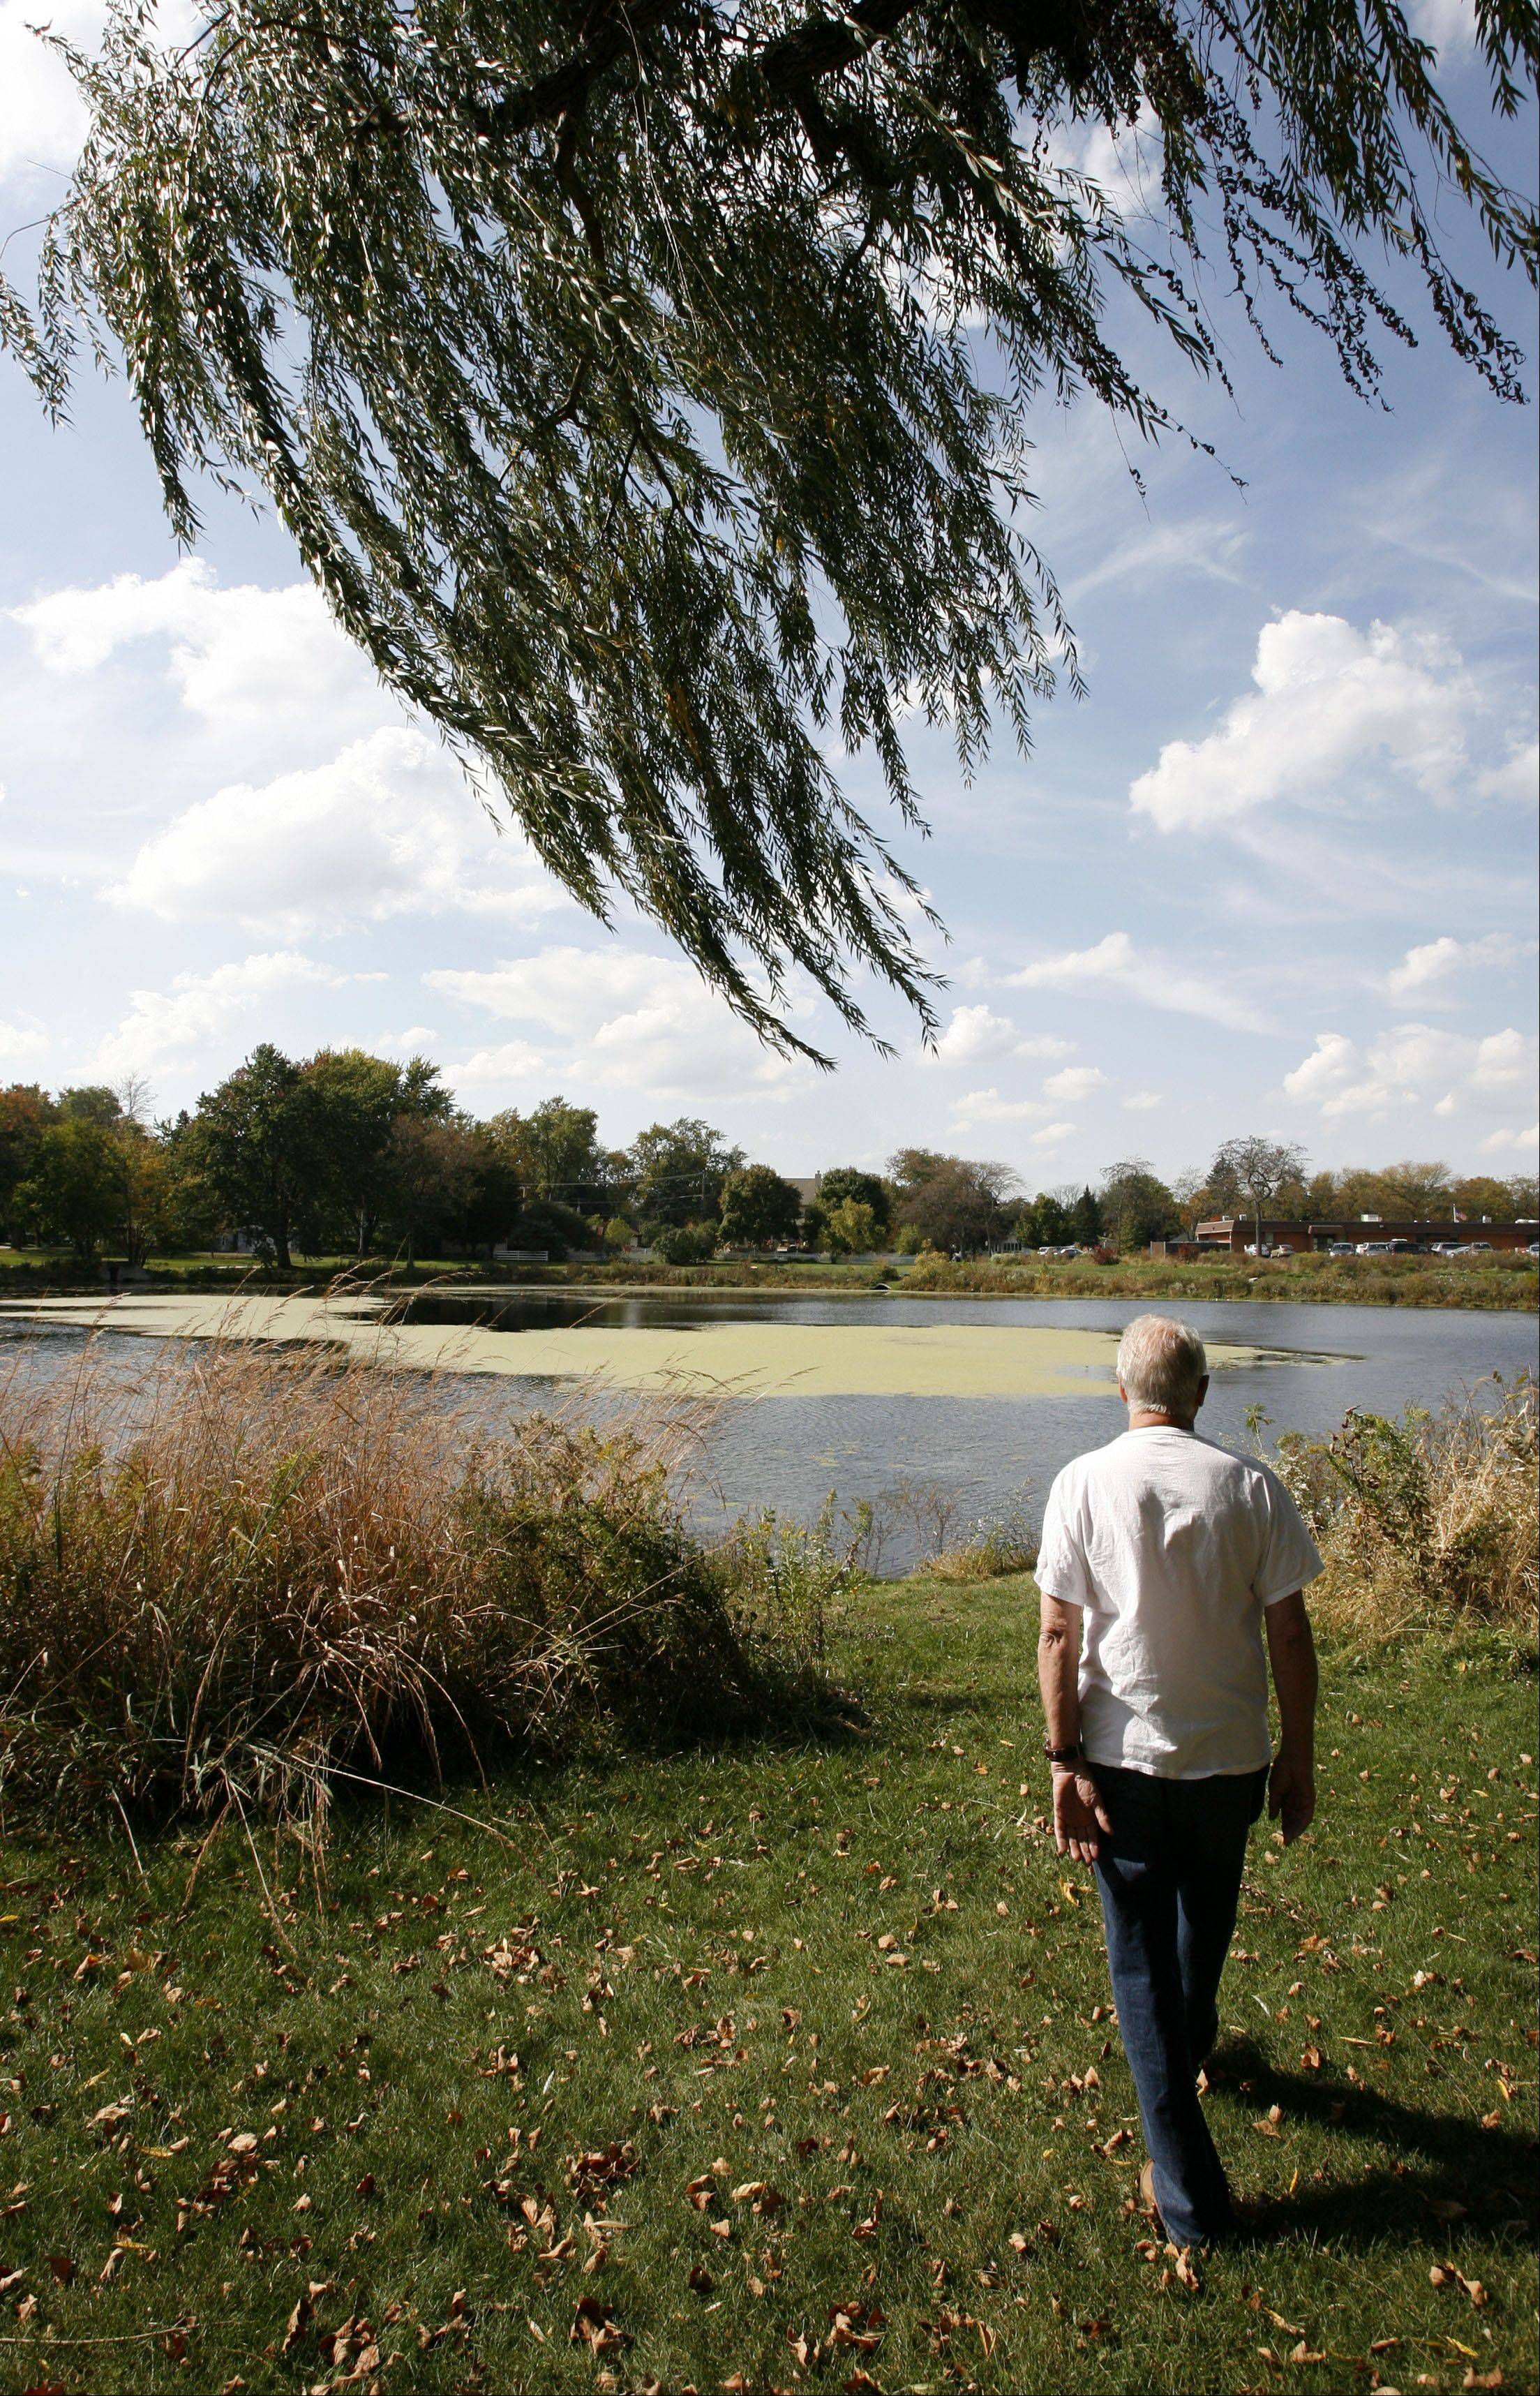 Donald Easterbrook of Lombard said he enjoys walking around Terrace View Pond in Lombard and doesn't want stormwater improvements being considered to harm the park's environment.